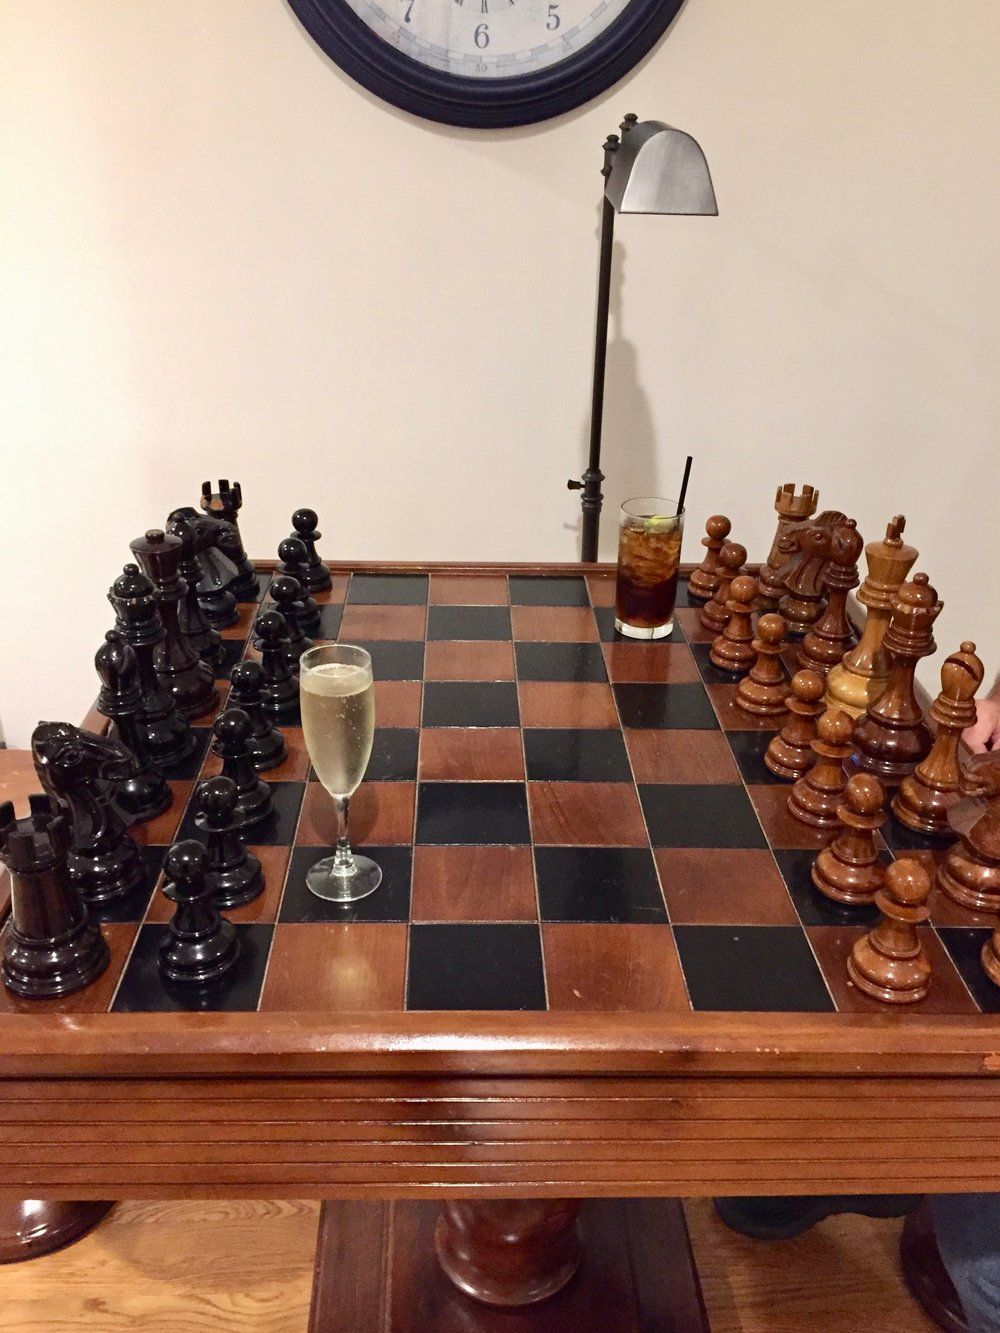 Playing chess winnetu Marthas Vineyard jpg.jpg